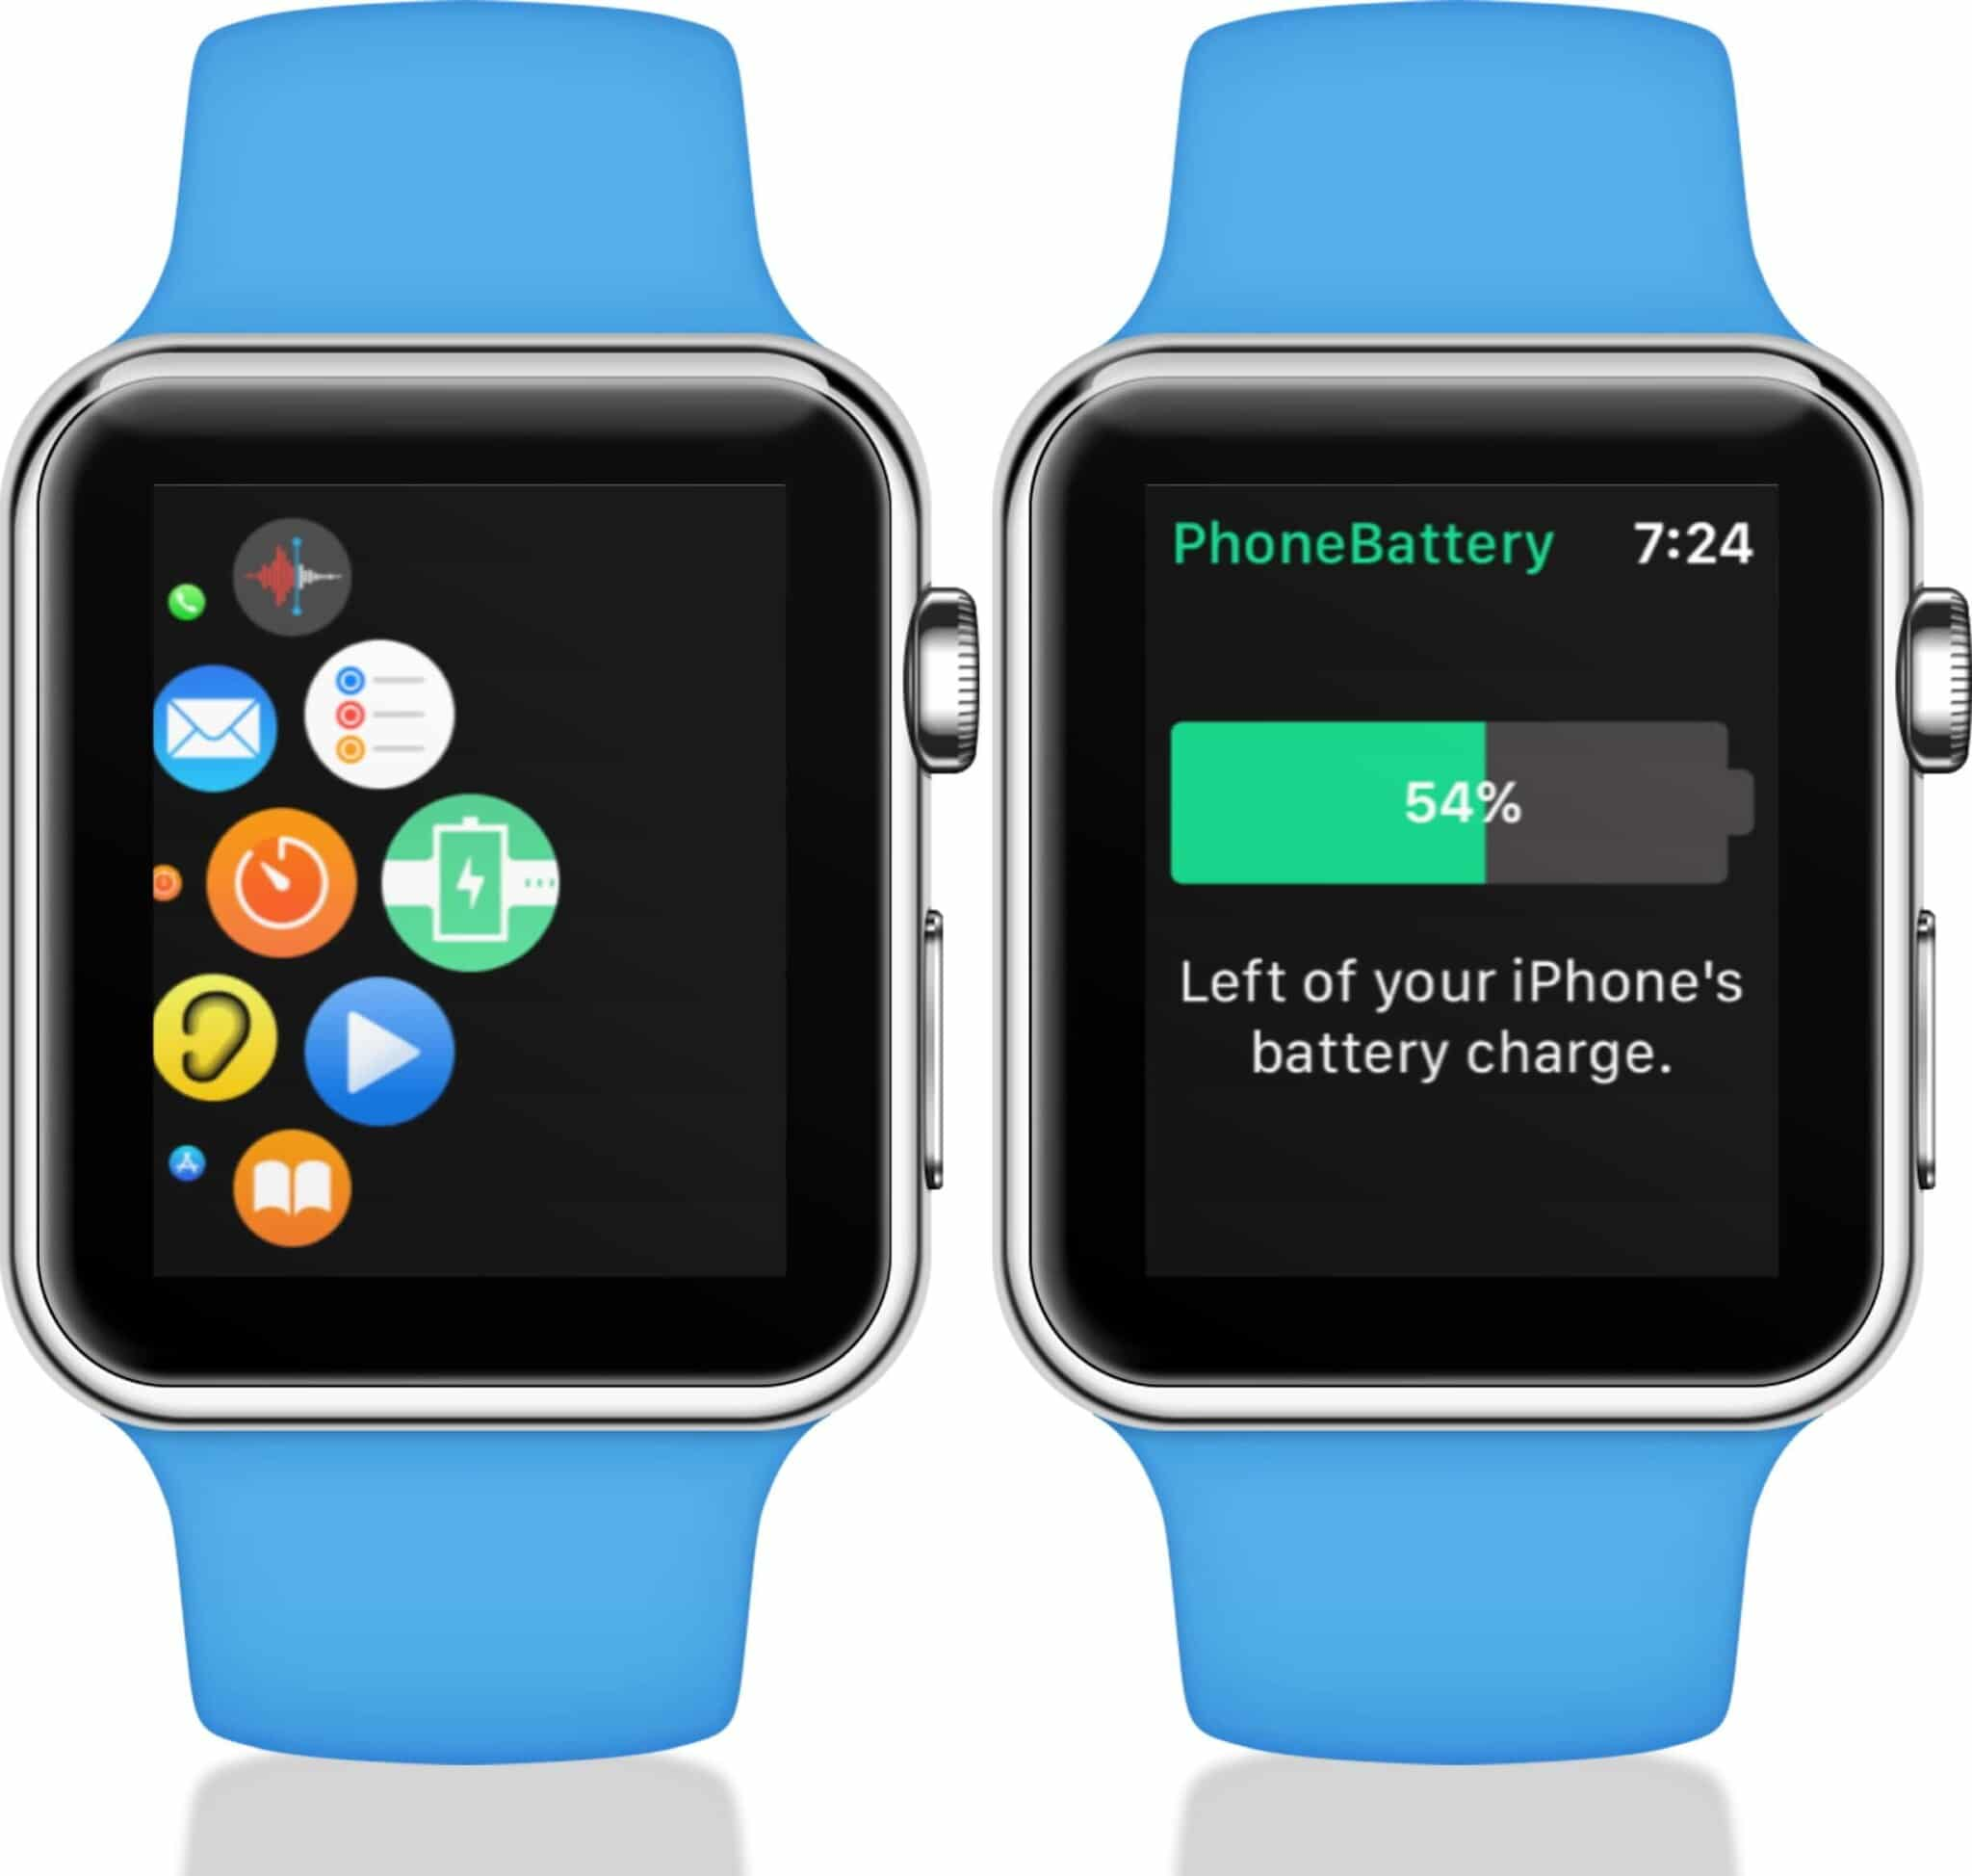 open app to see iphone battery life on apple watch